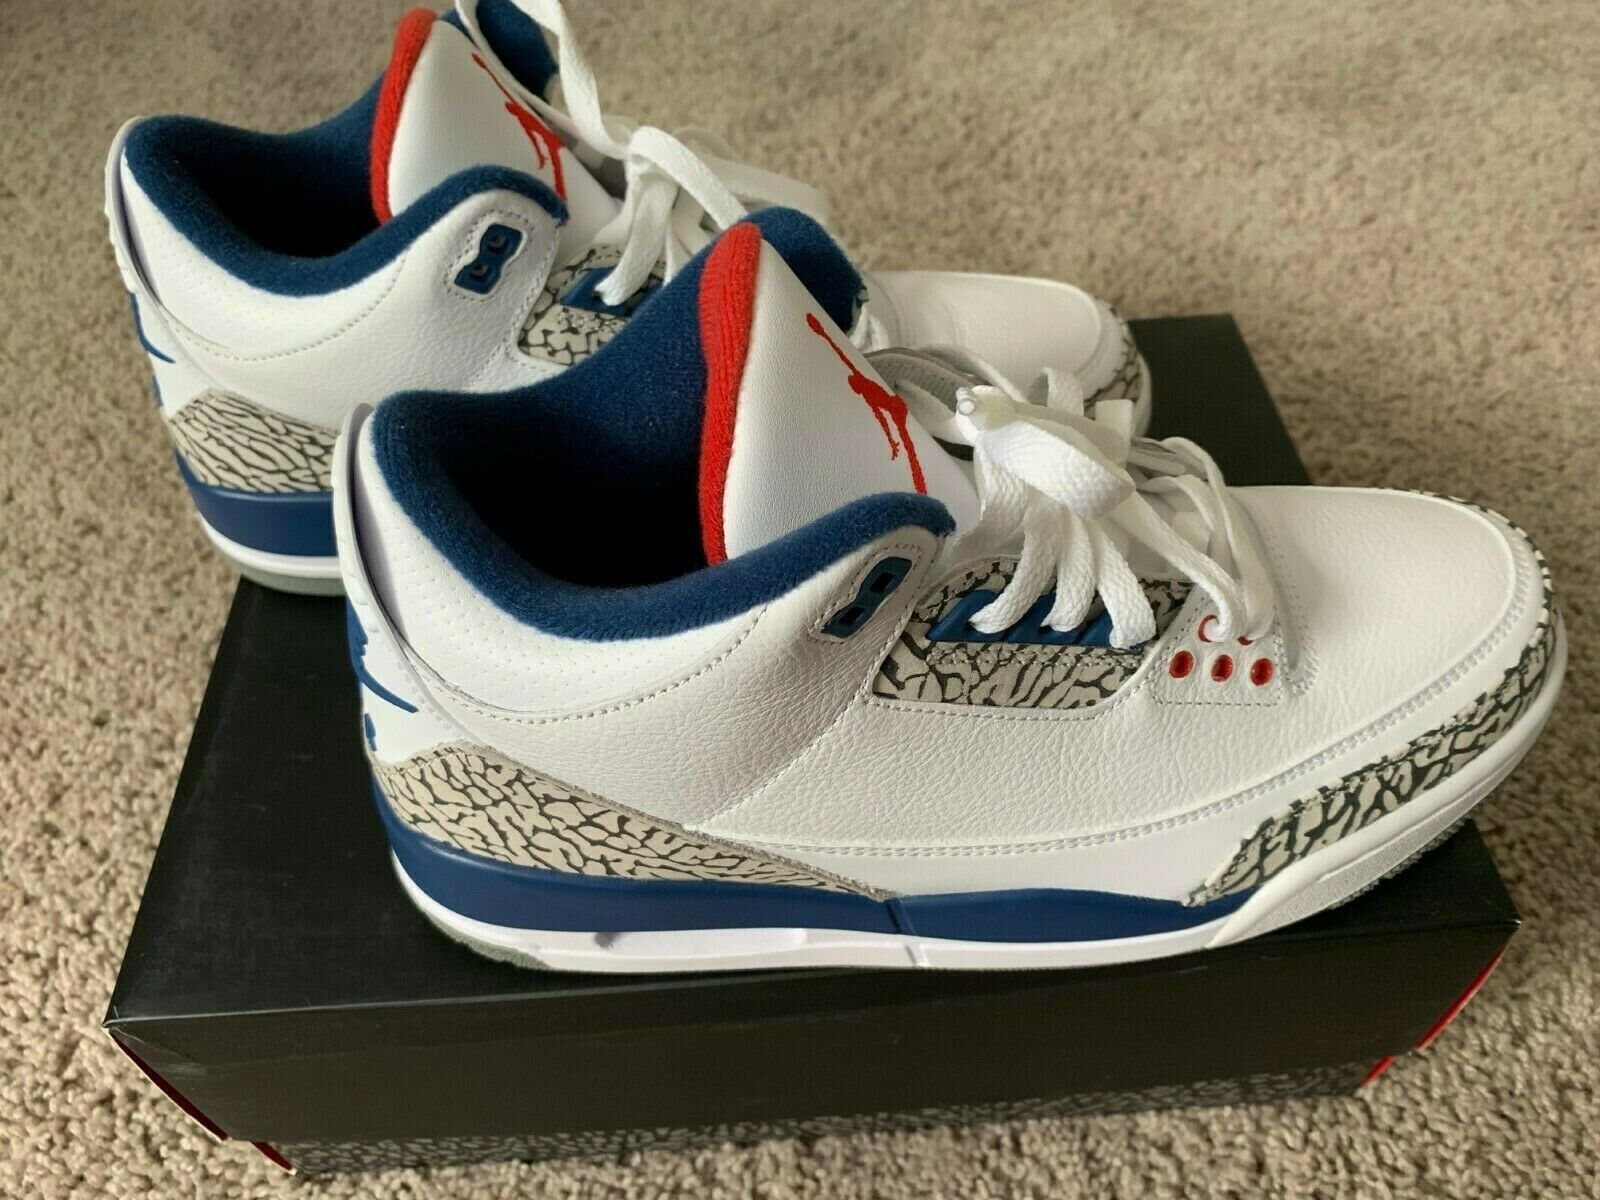 new styles 2eb86 2928c 2016 Air 3 III Retro True bluee SIZE 11 White Cement Grey ( NEW ) Jordan  NIKE zfvtli2329-Athletic Shoes